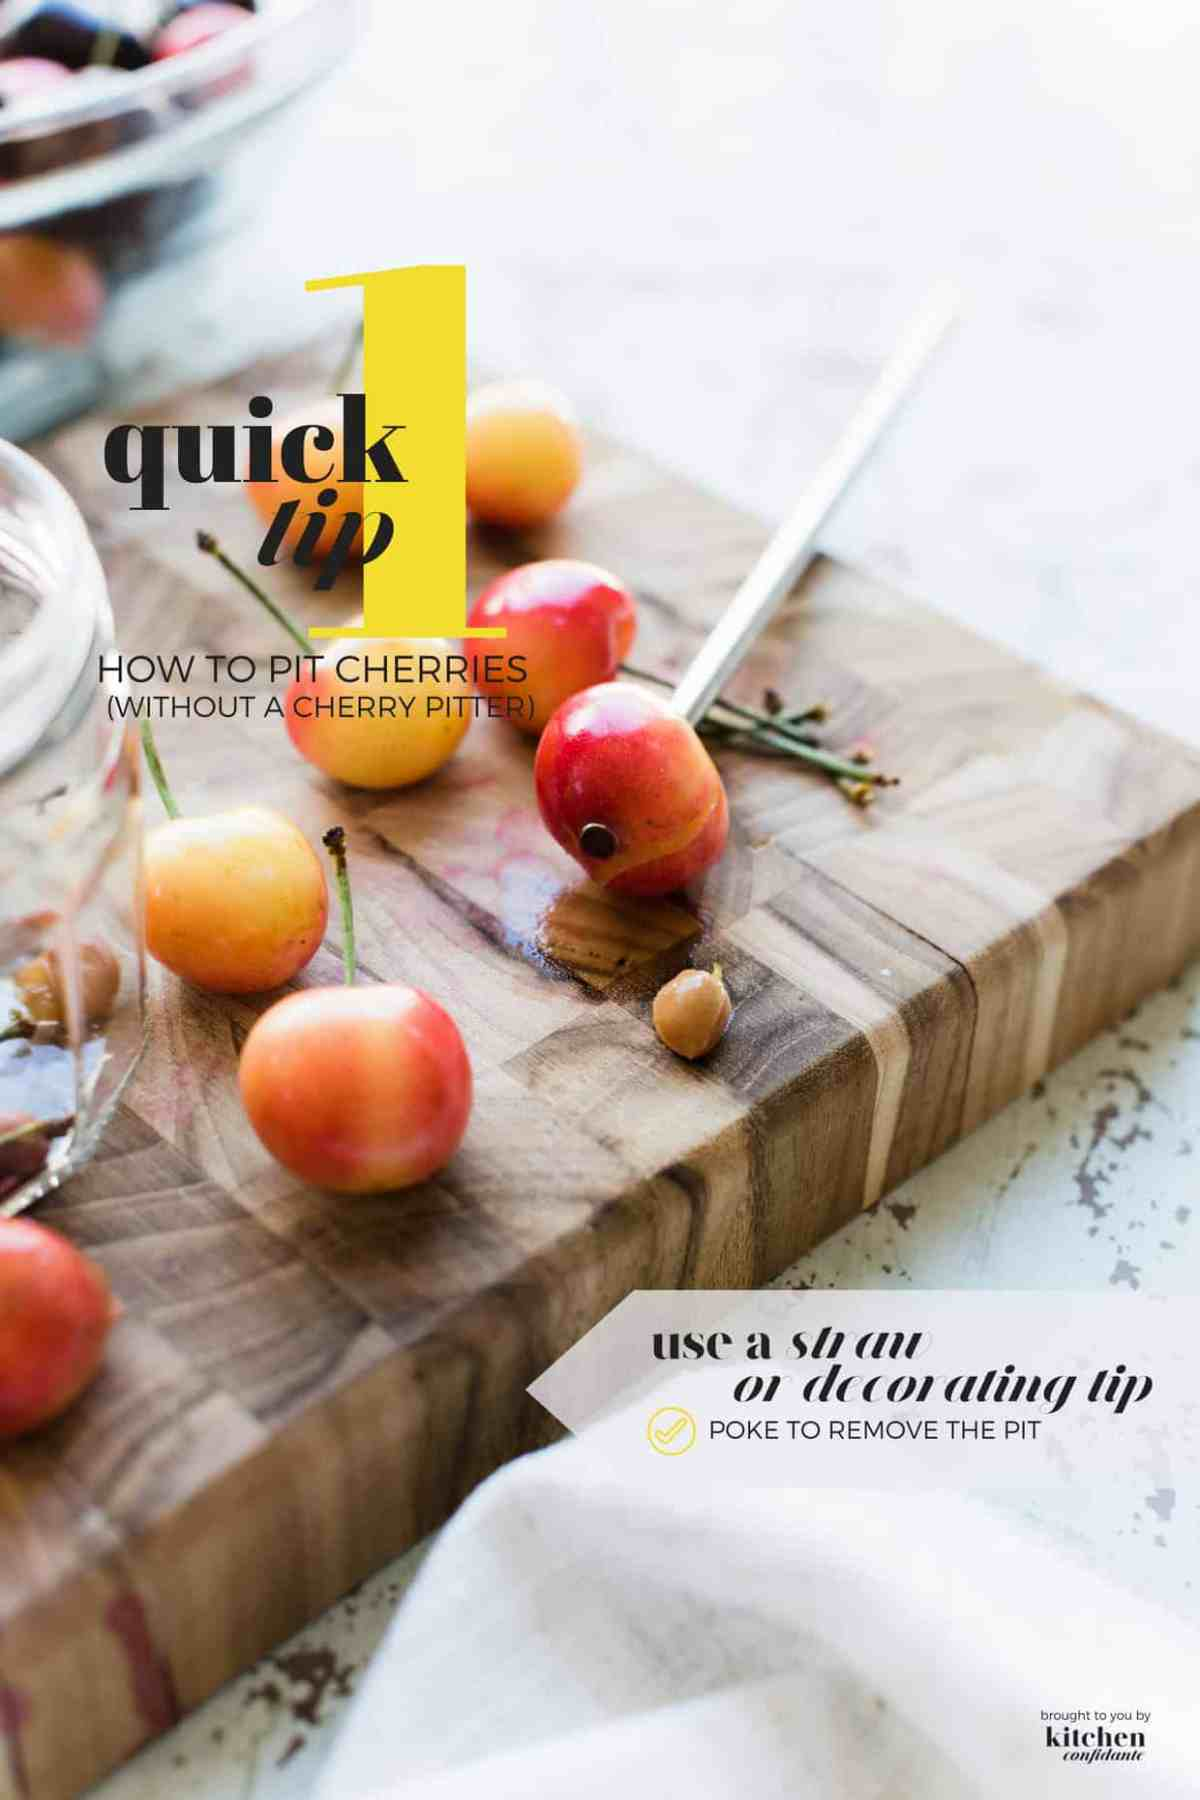 Tips on how to use a straw or decorating tip to pit cherries without a cherry pitter.